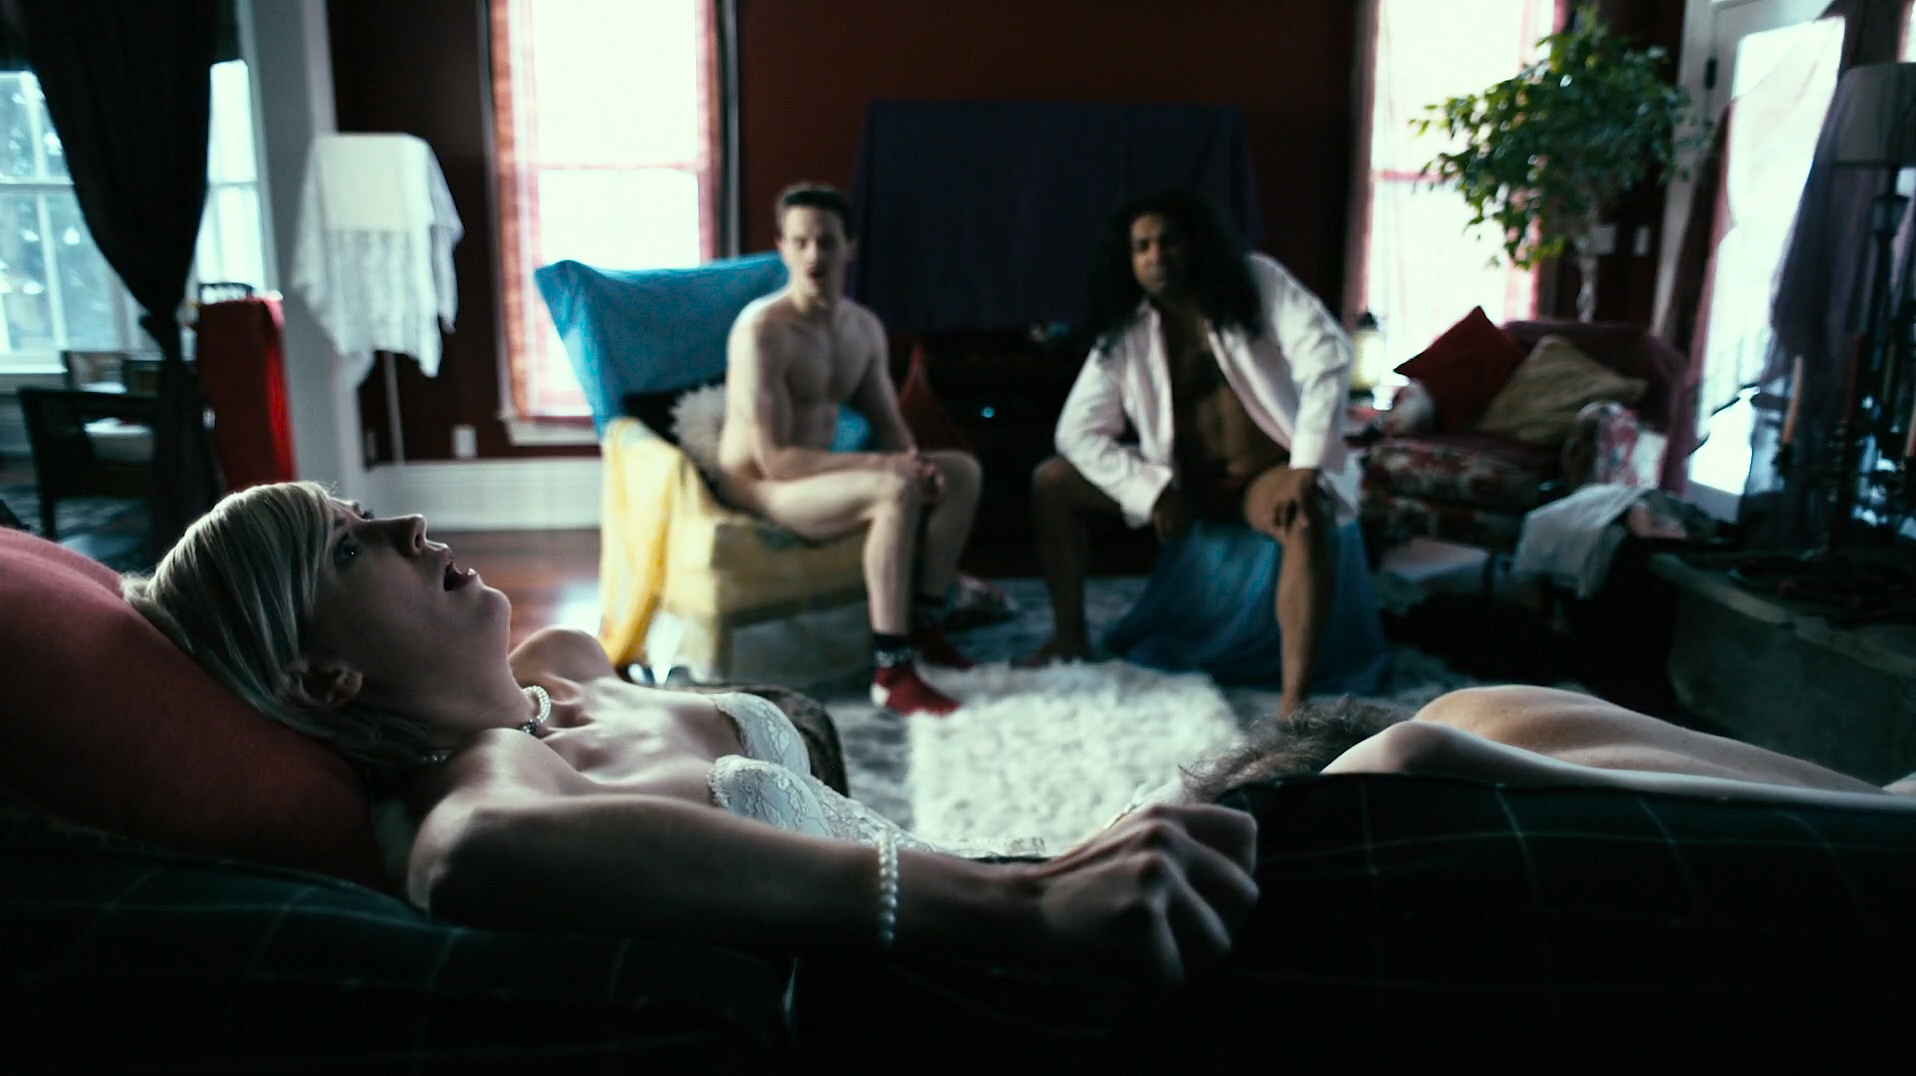 Lauren Lee Smith hot sex Jewel Staite hot Zoe Cleland nude and Katharine Isabelle - How To Plan An Orgy In A Small Town (CA-2015) HD 1080p WEB-DL (18)